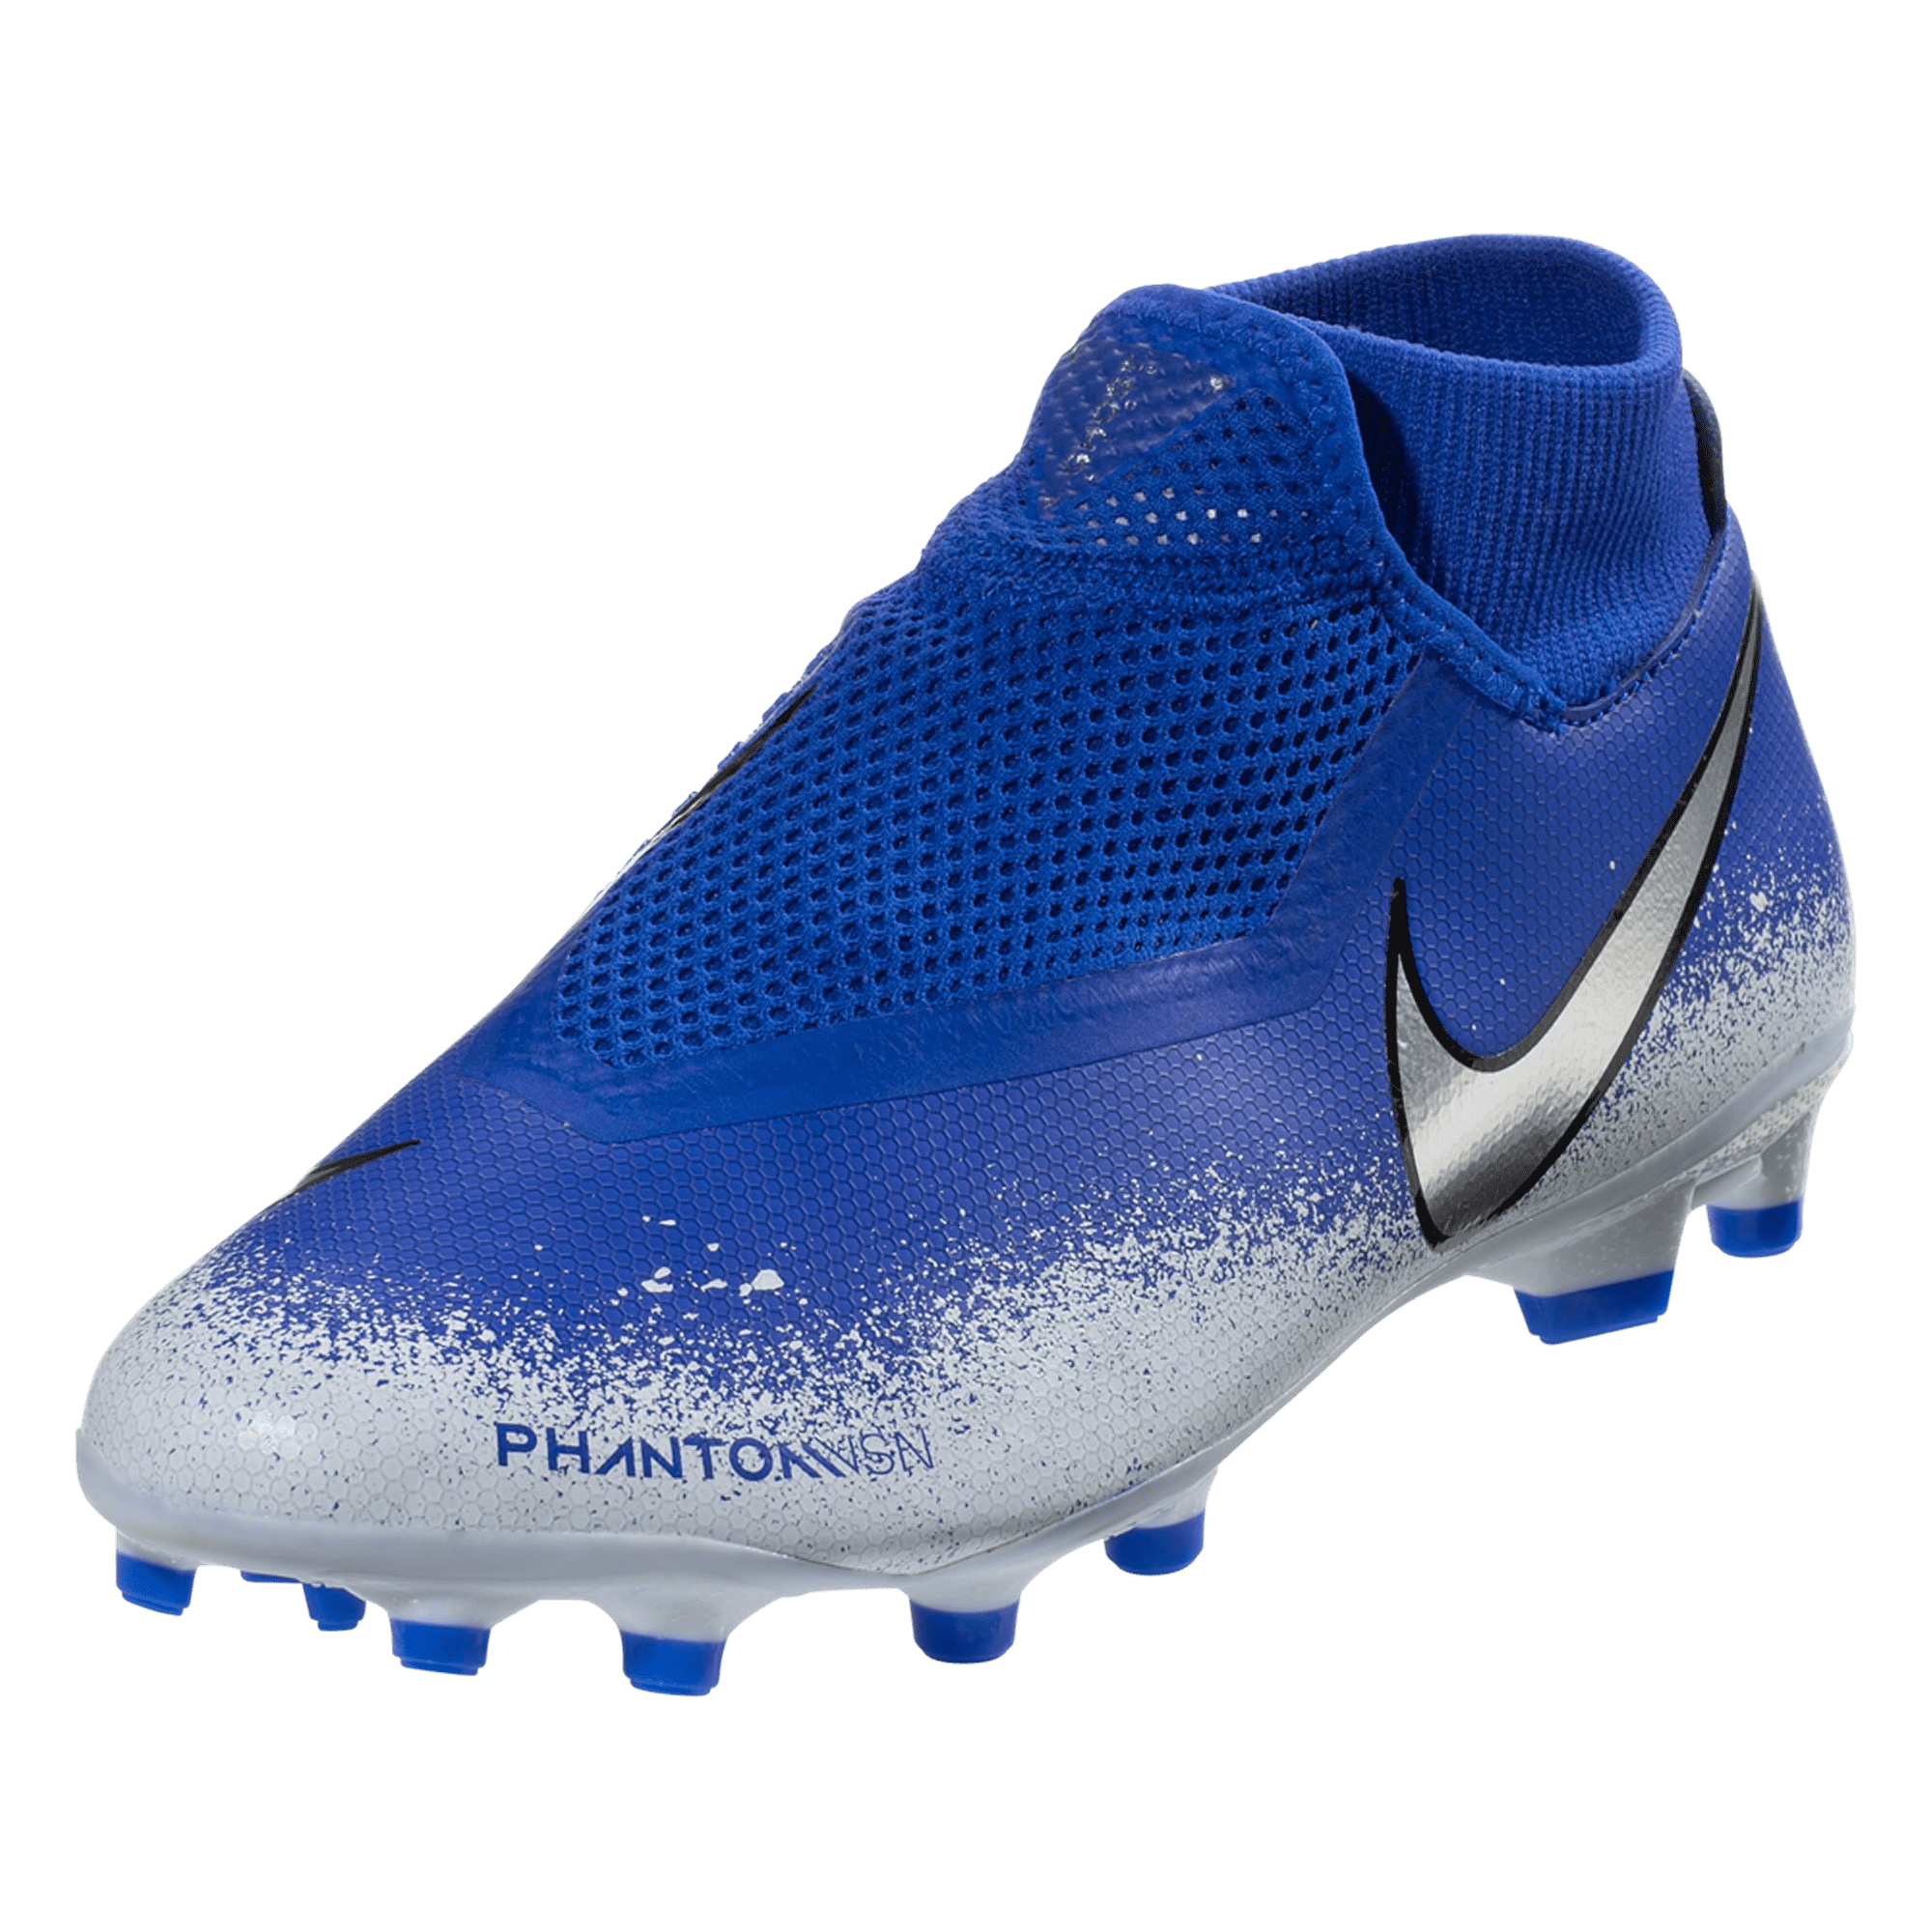 Nike Phantom Vision Academy DF FG/MG Firm Ground Soccer Cleat - Racer Blue / Chrome / White /Black